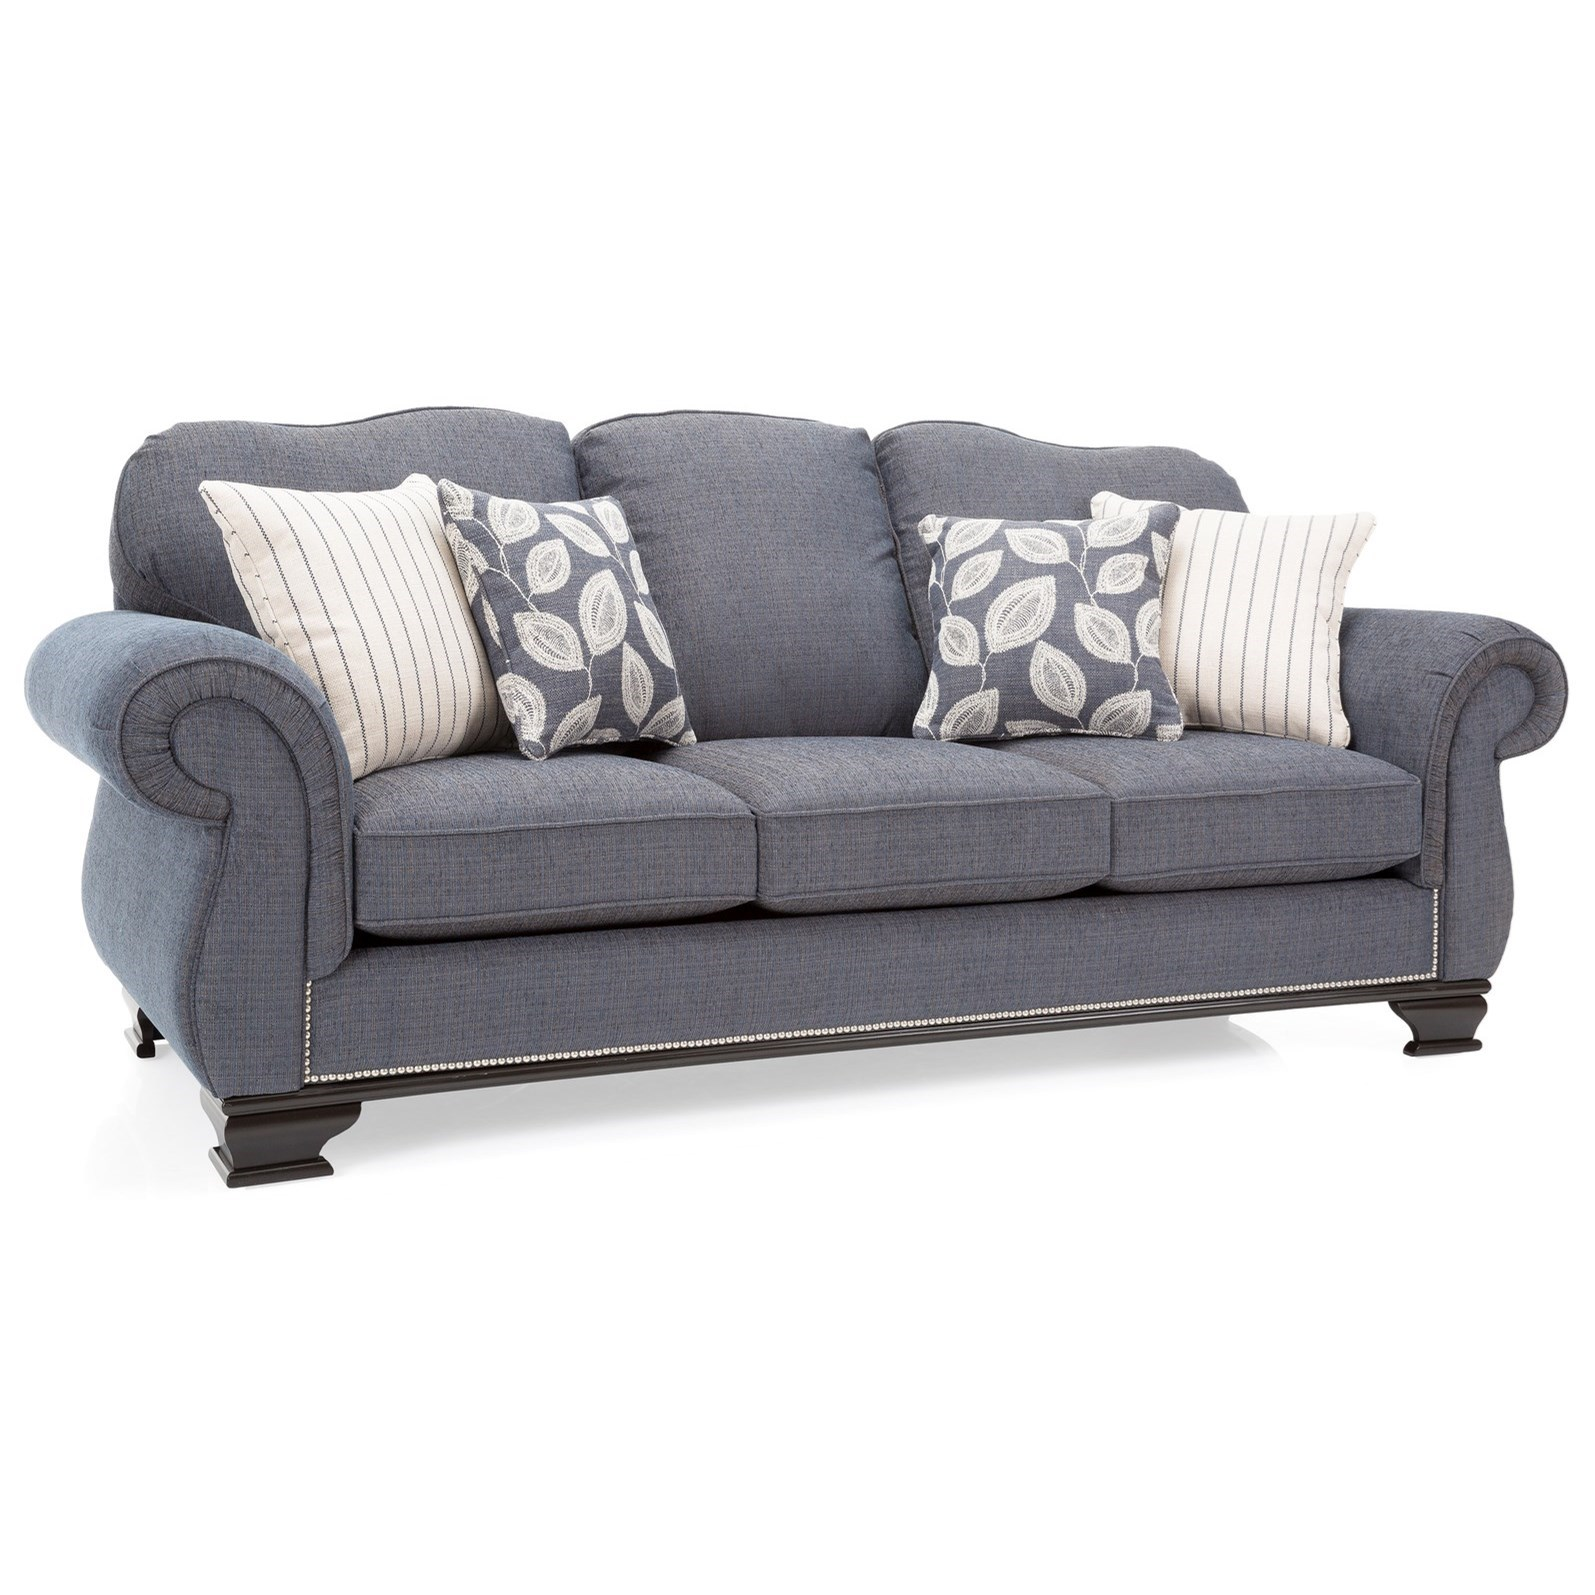 6933 Sofa by Decor-Rest at Wayside Furniture